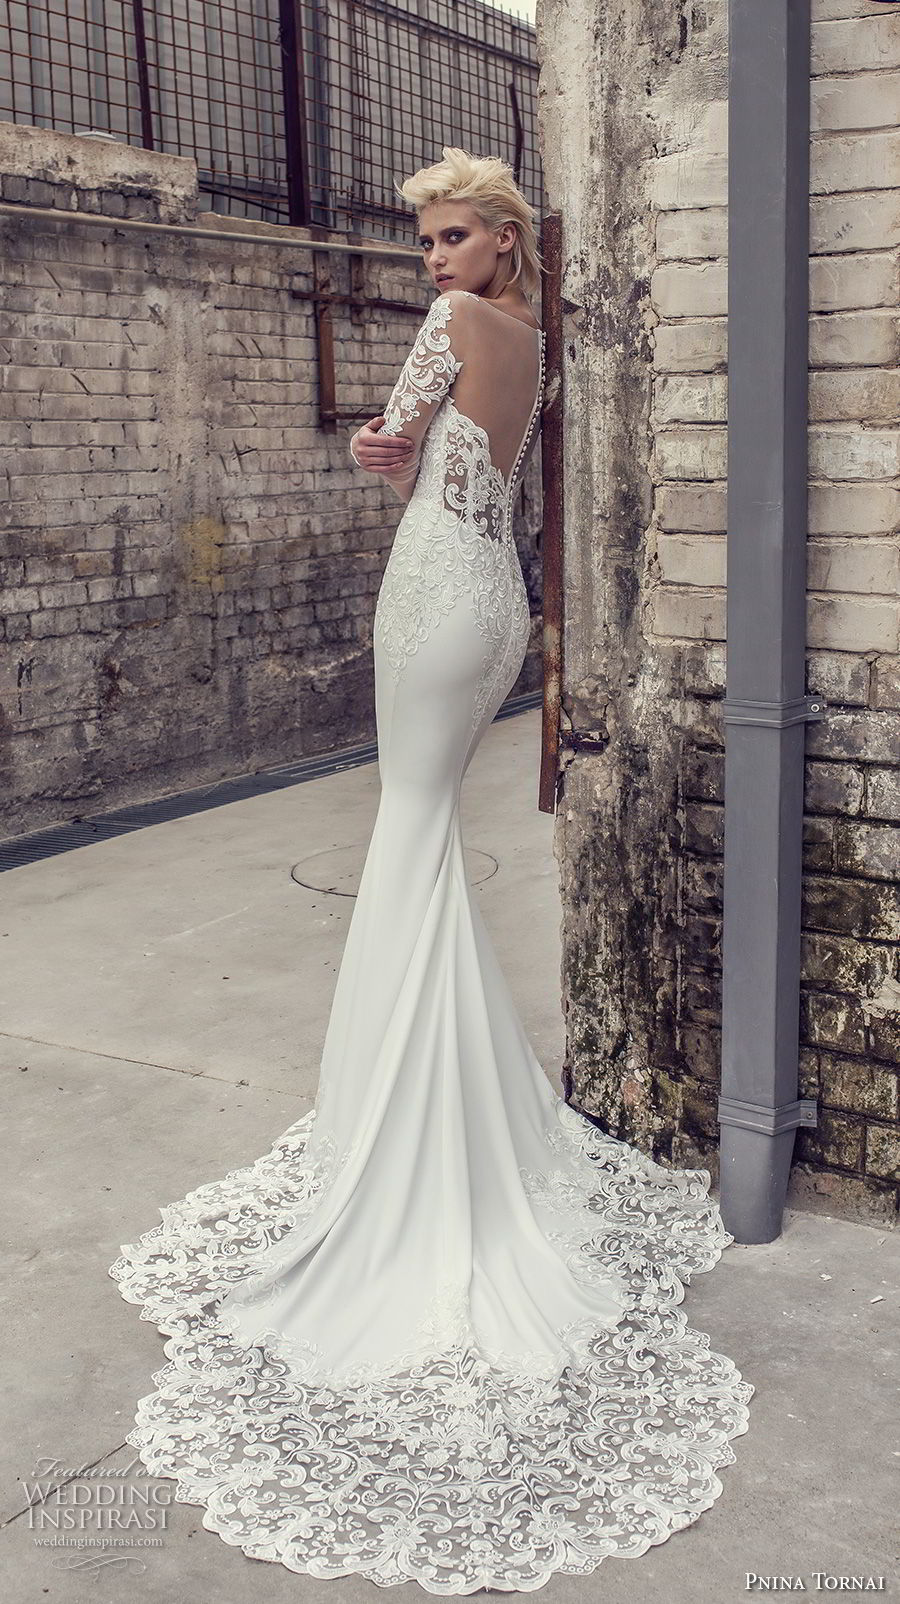 pnina tornai 2019 love bridal long sleeves deep plunging v neck heavily embellished bodice elegant sheath wedding dress sheer button back chapel train (10) bv mv